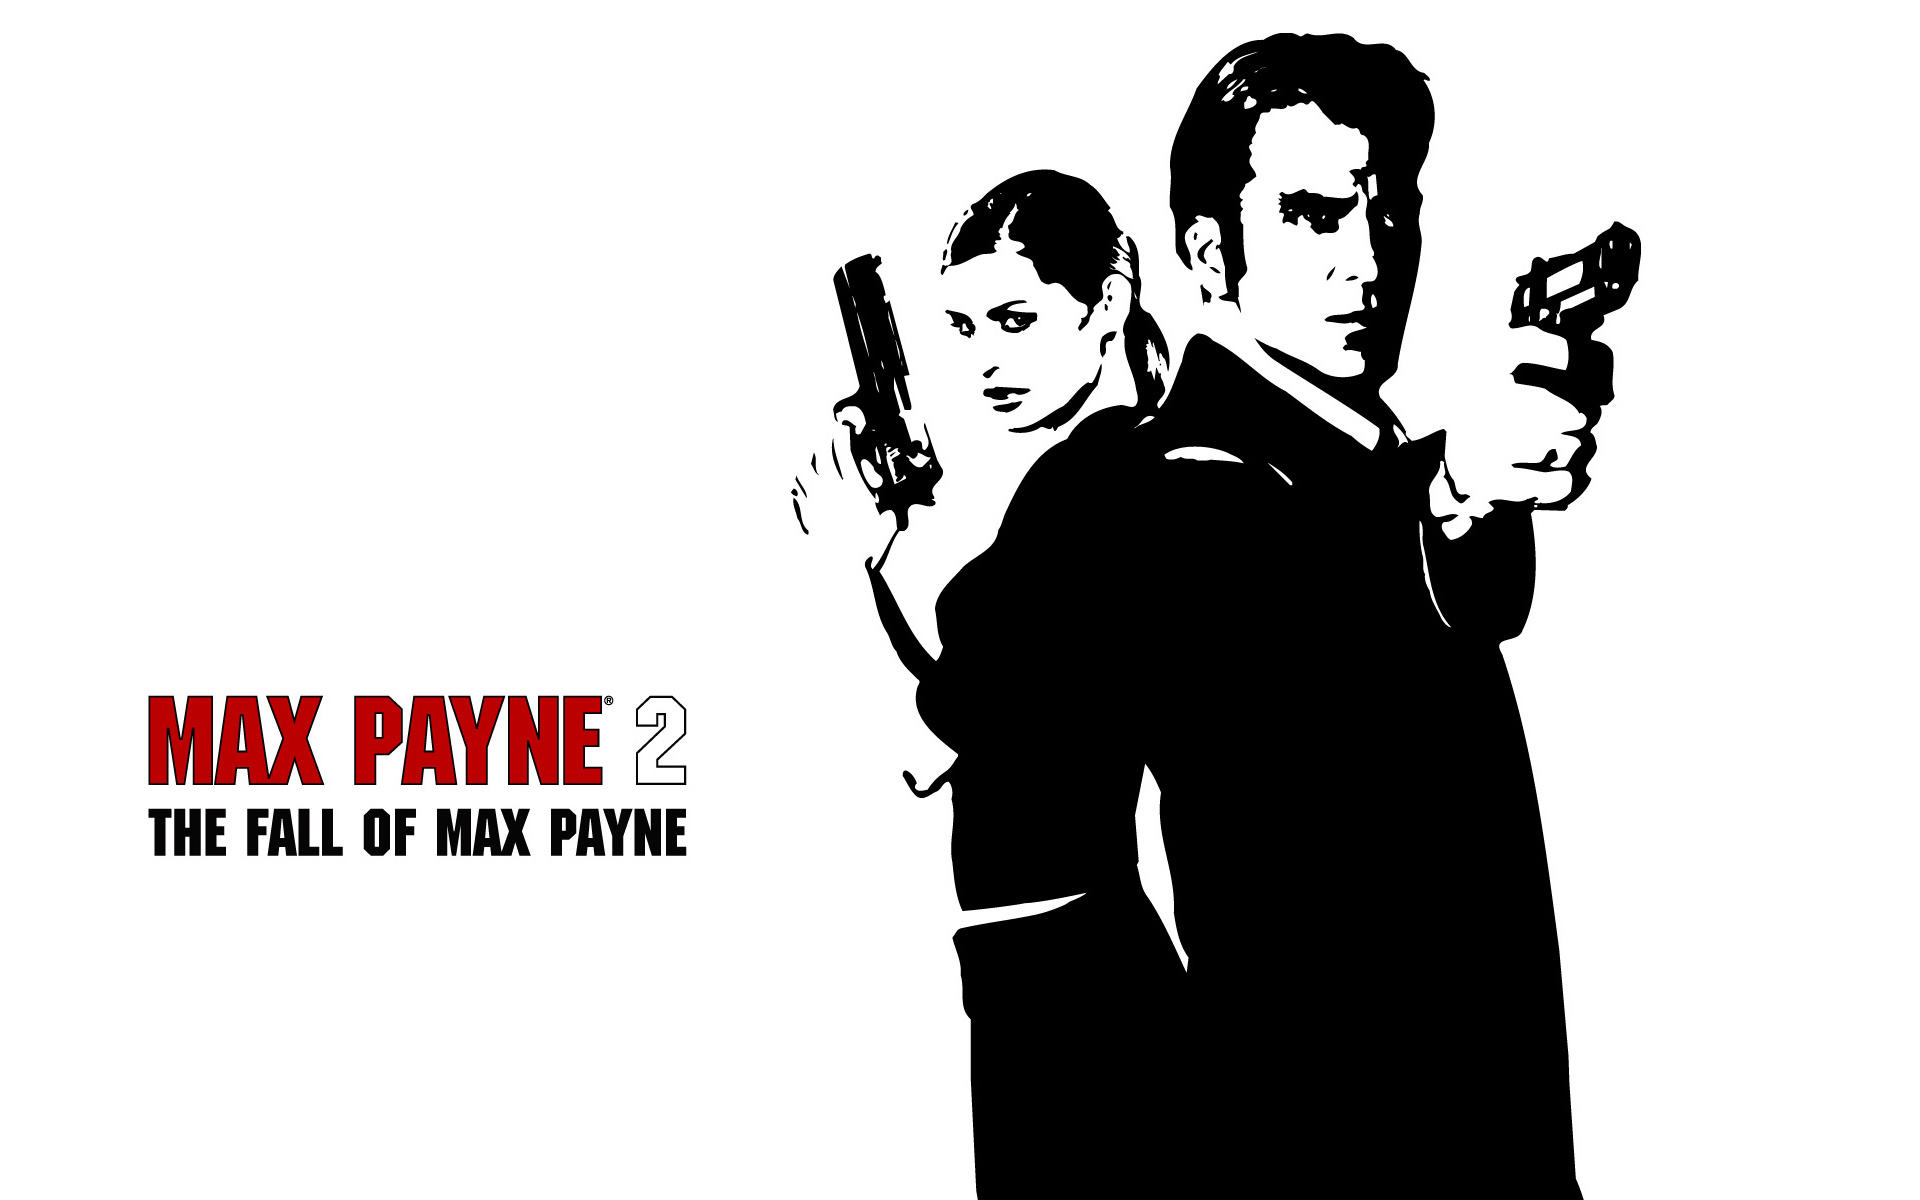 Fall Max Payne Hd Wallpapers Fonds D Ecran Max Payne Max Payne 2 Jeux Filles